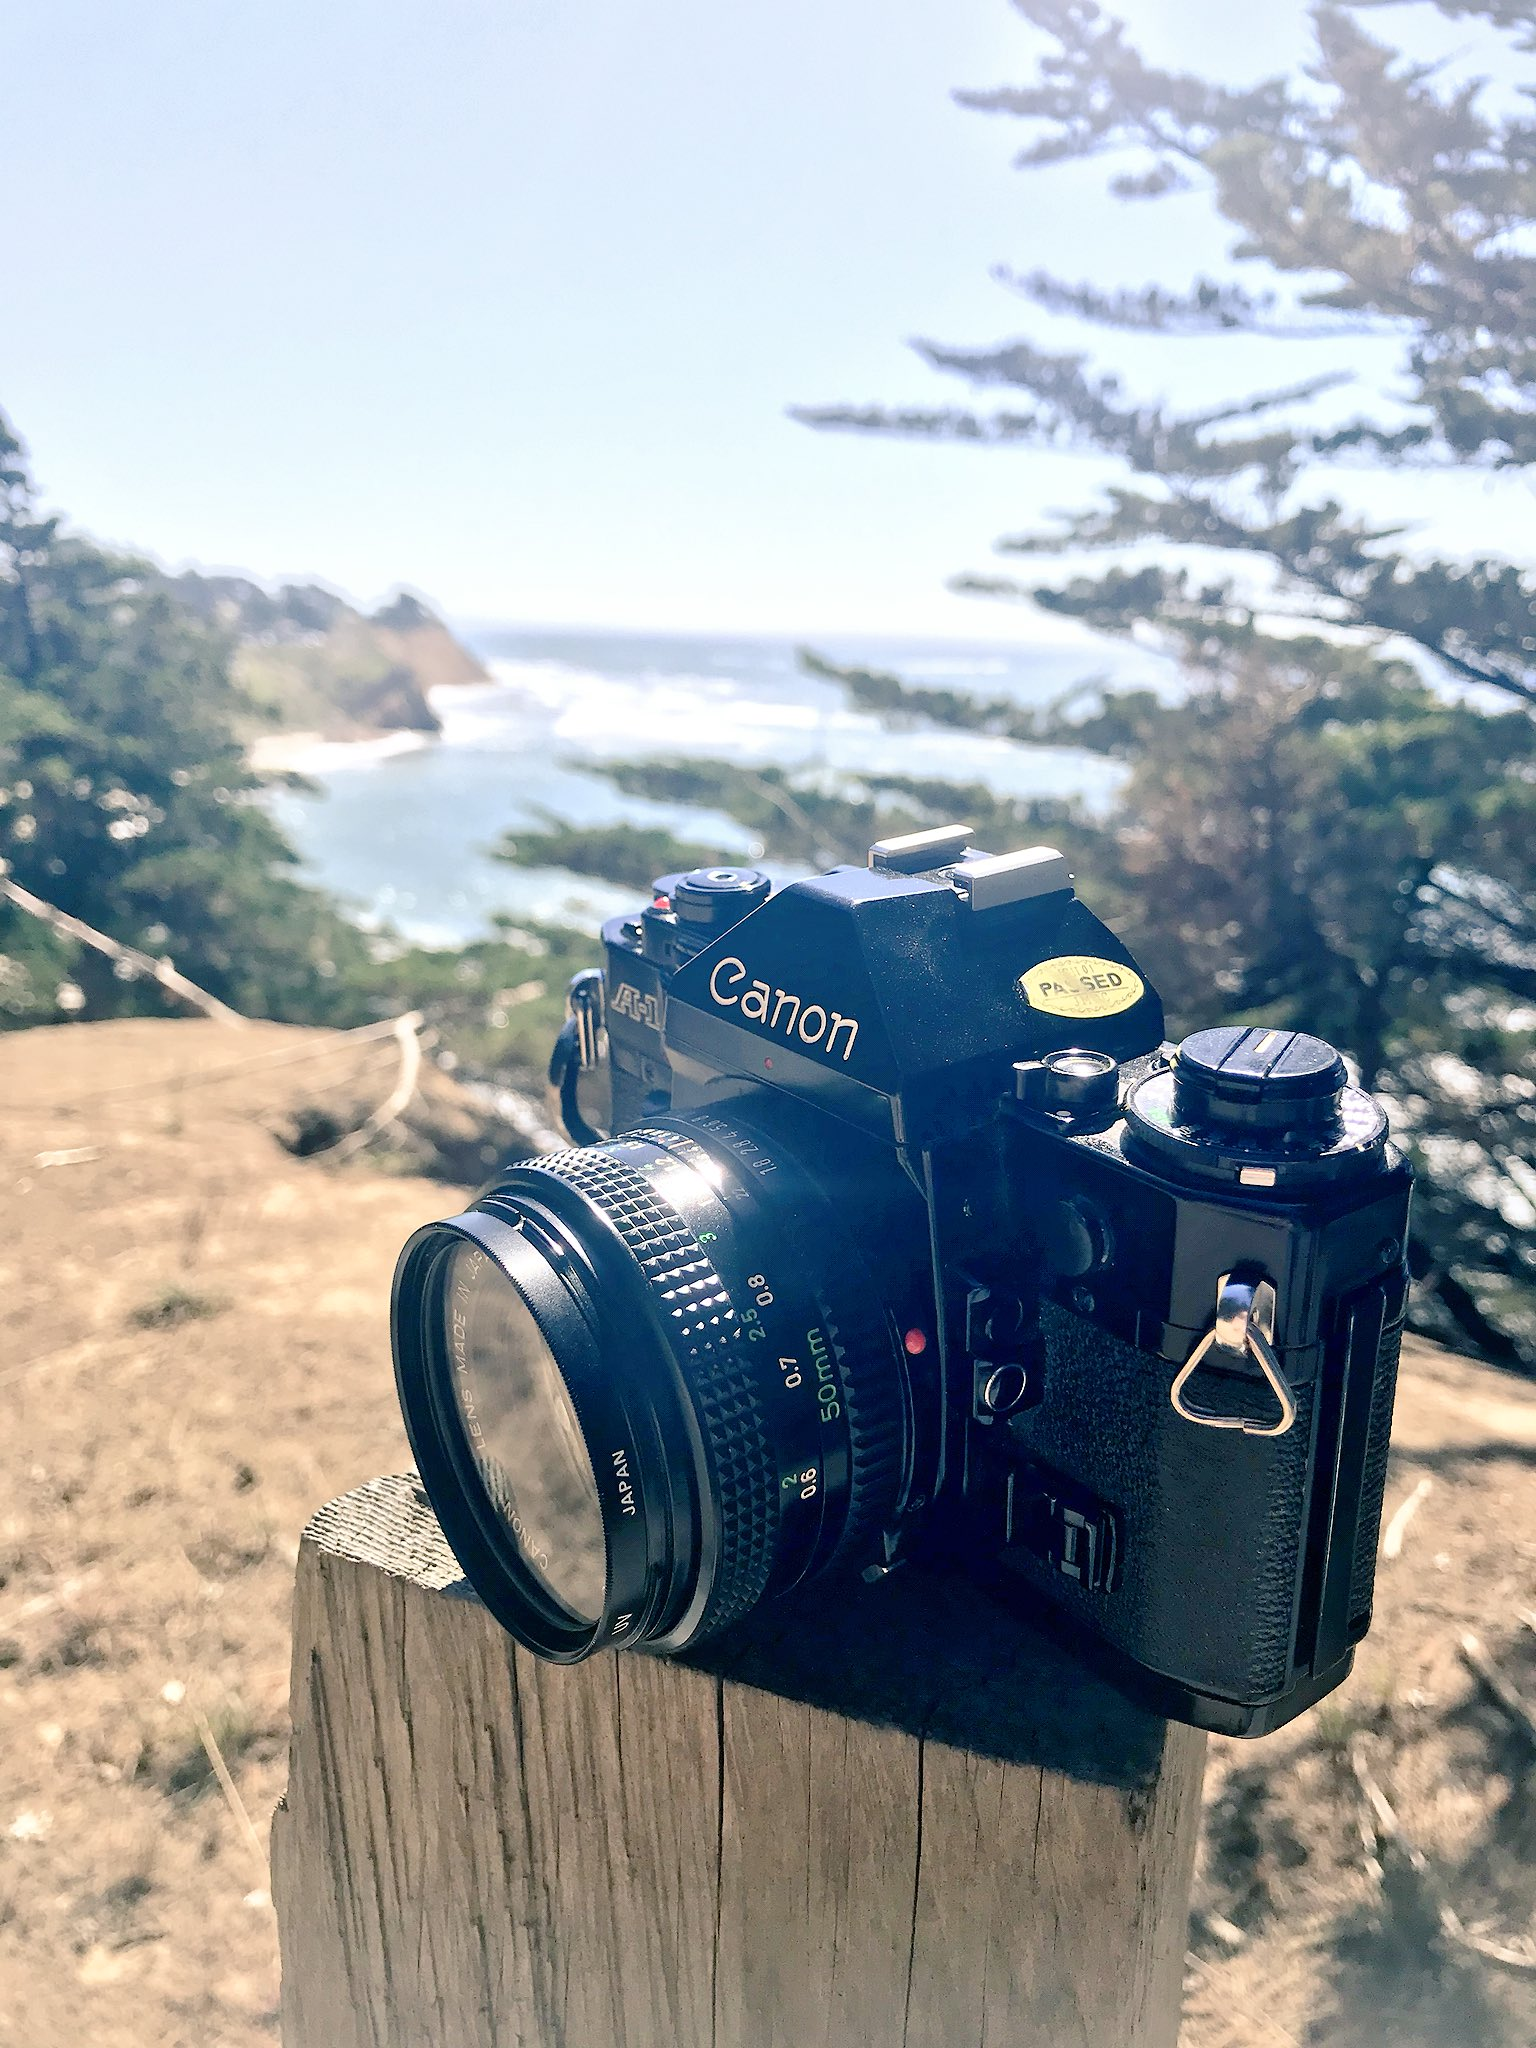 Shooting some film near Pacifica https://t.co/96LhY7XHKH